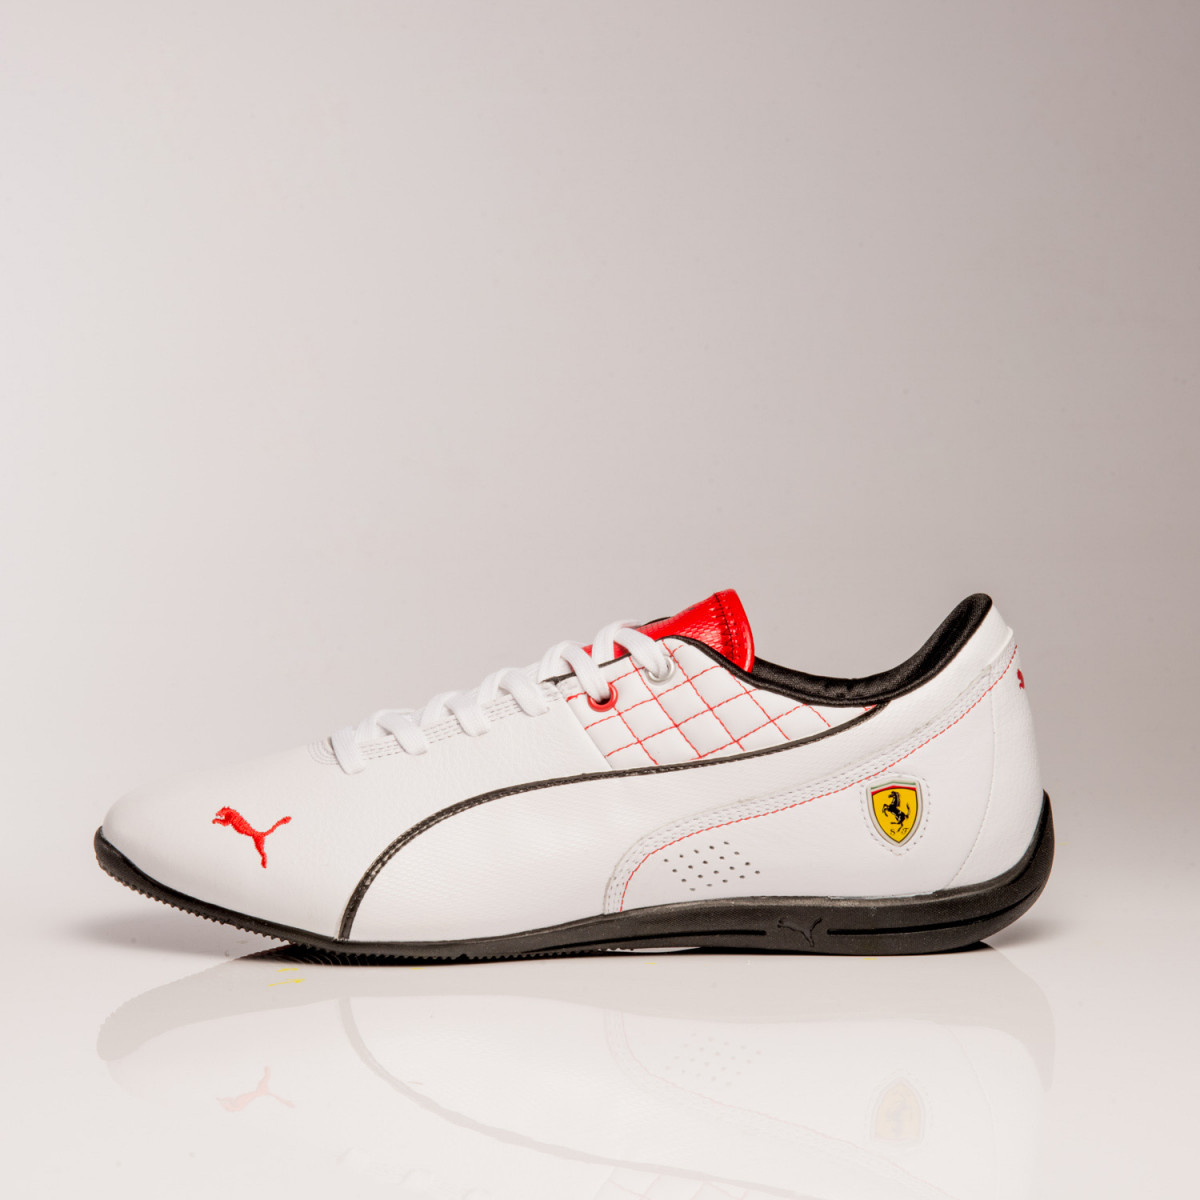 ZAPATILLAS PUMA DRIFT CAT 6 SF FLASH ARG DP